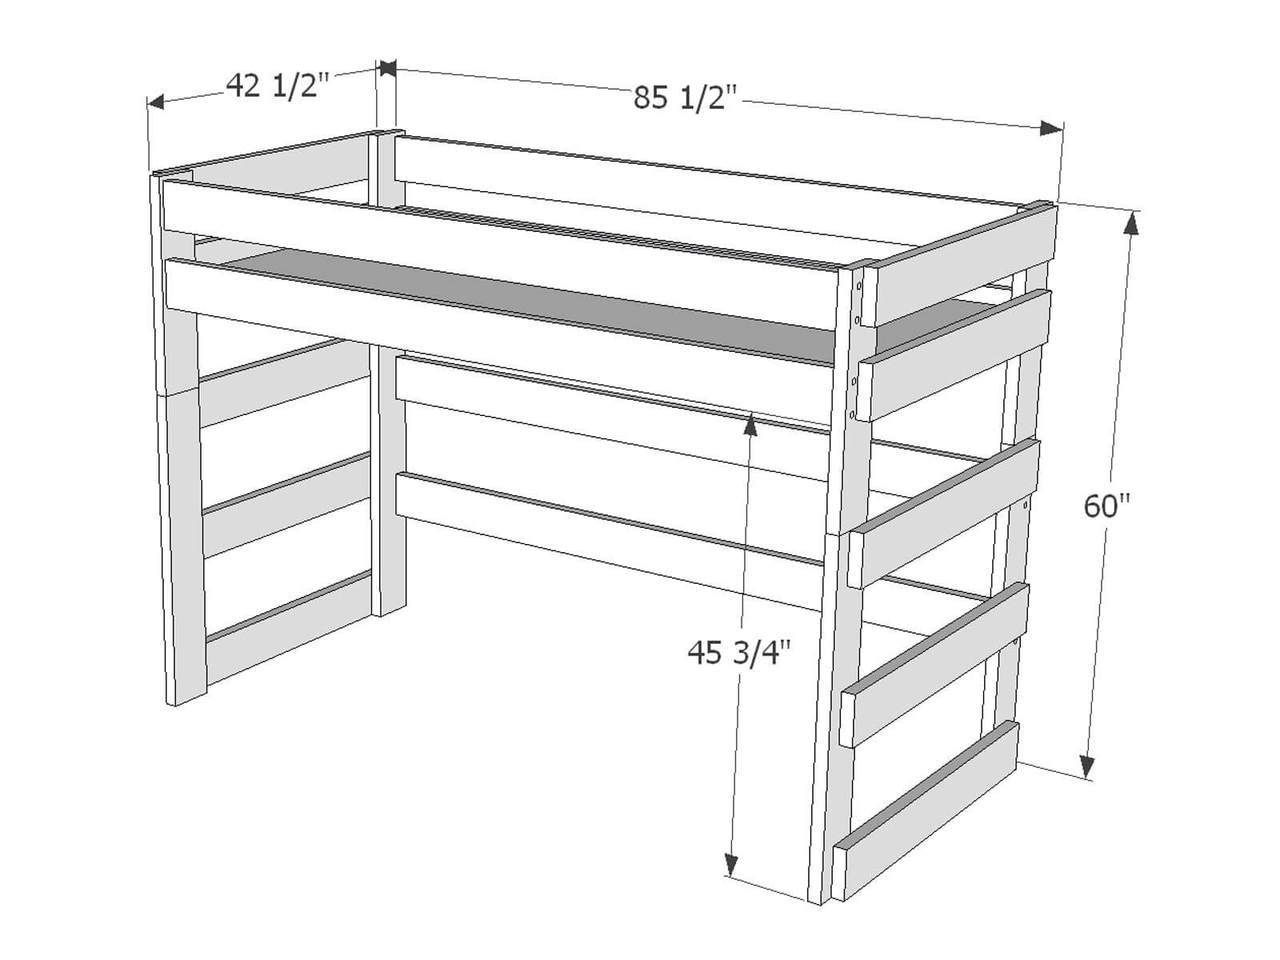 Dimensions Of Loft Bed L212 Loft Bed Plans Loft Bed Twin Loft Bed